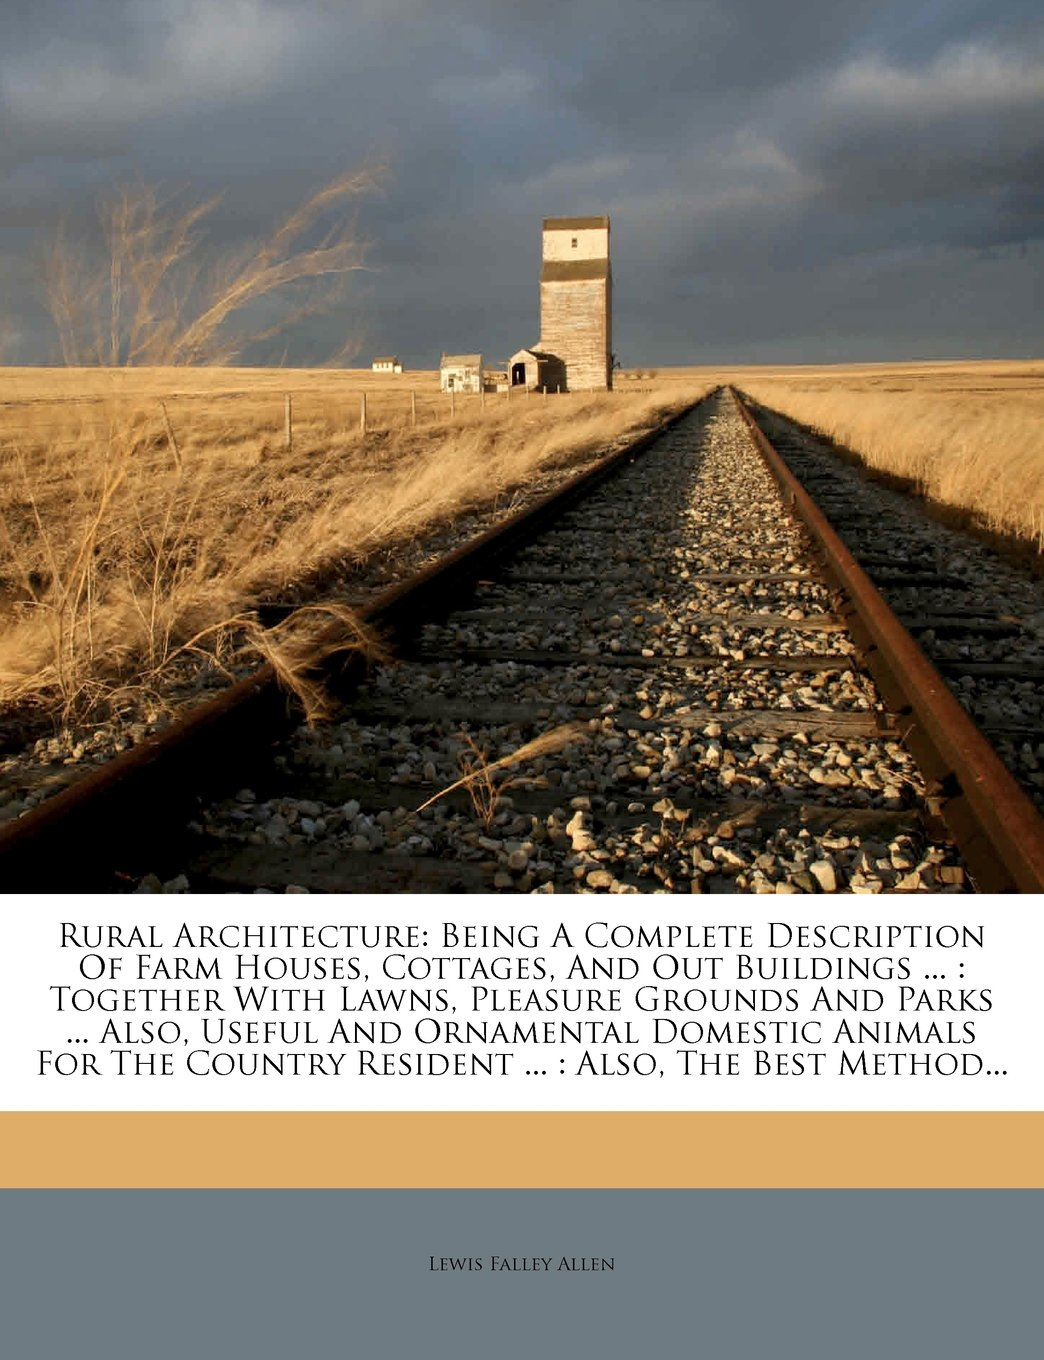 Read Online Rural Architecture: Being A Complete Description Of Farm Houses, Cottages, And Out Buildings ... : Together With Lawns, Pleasure Grounds And Parks ... ... Resident ... : Also, The Best Method... pdf epub